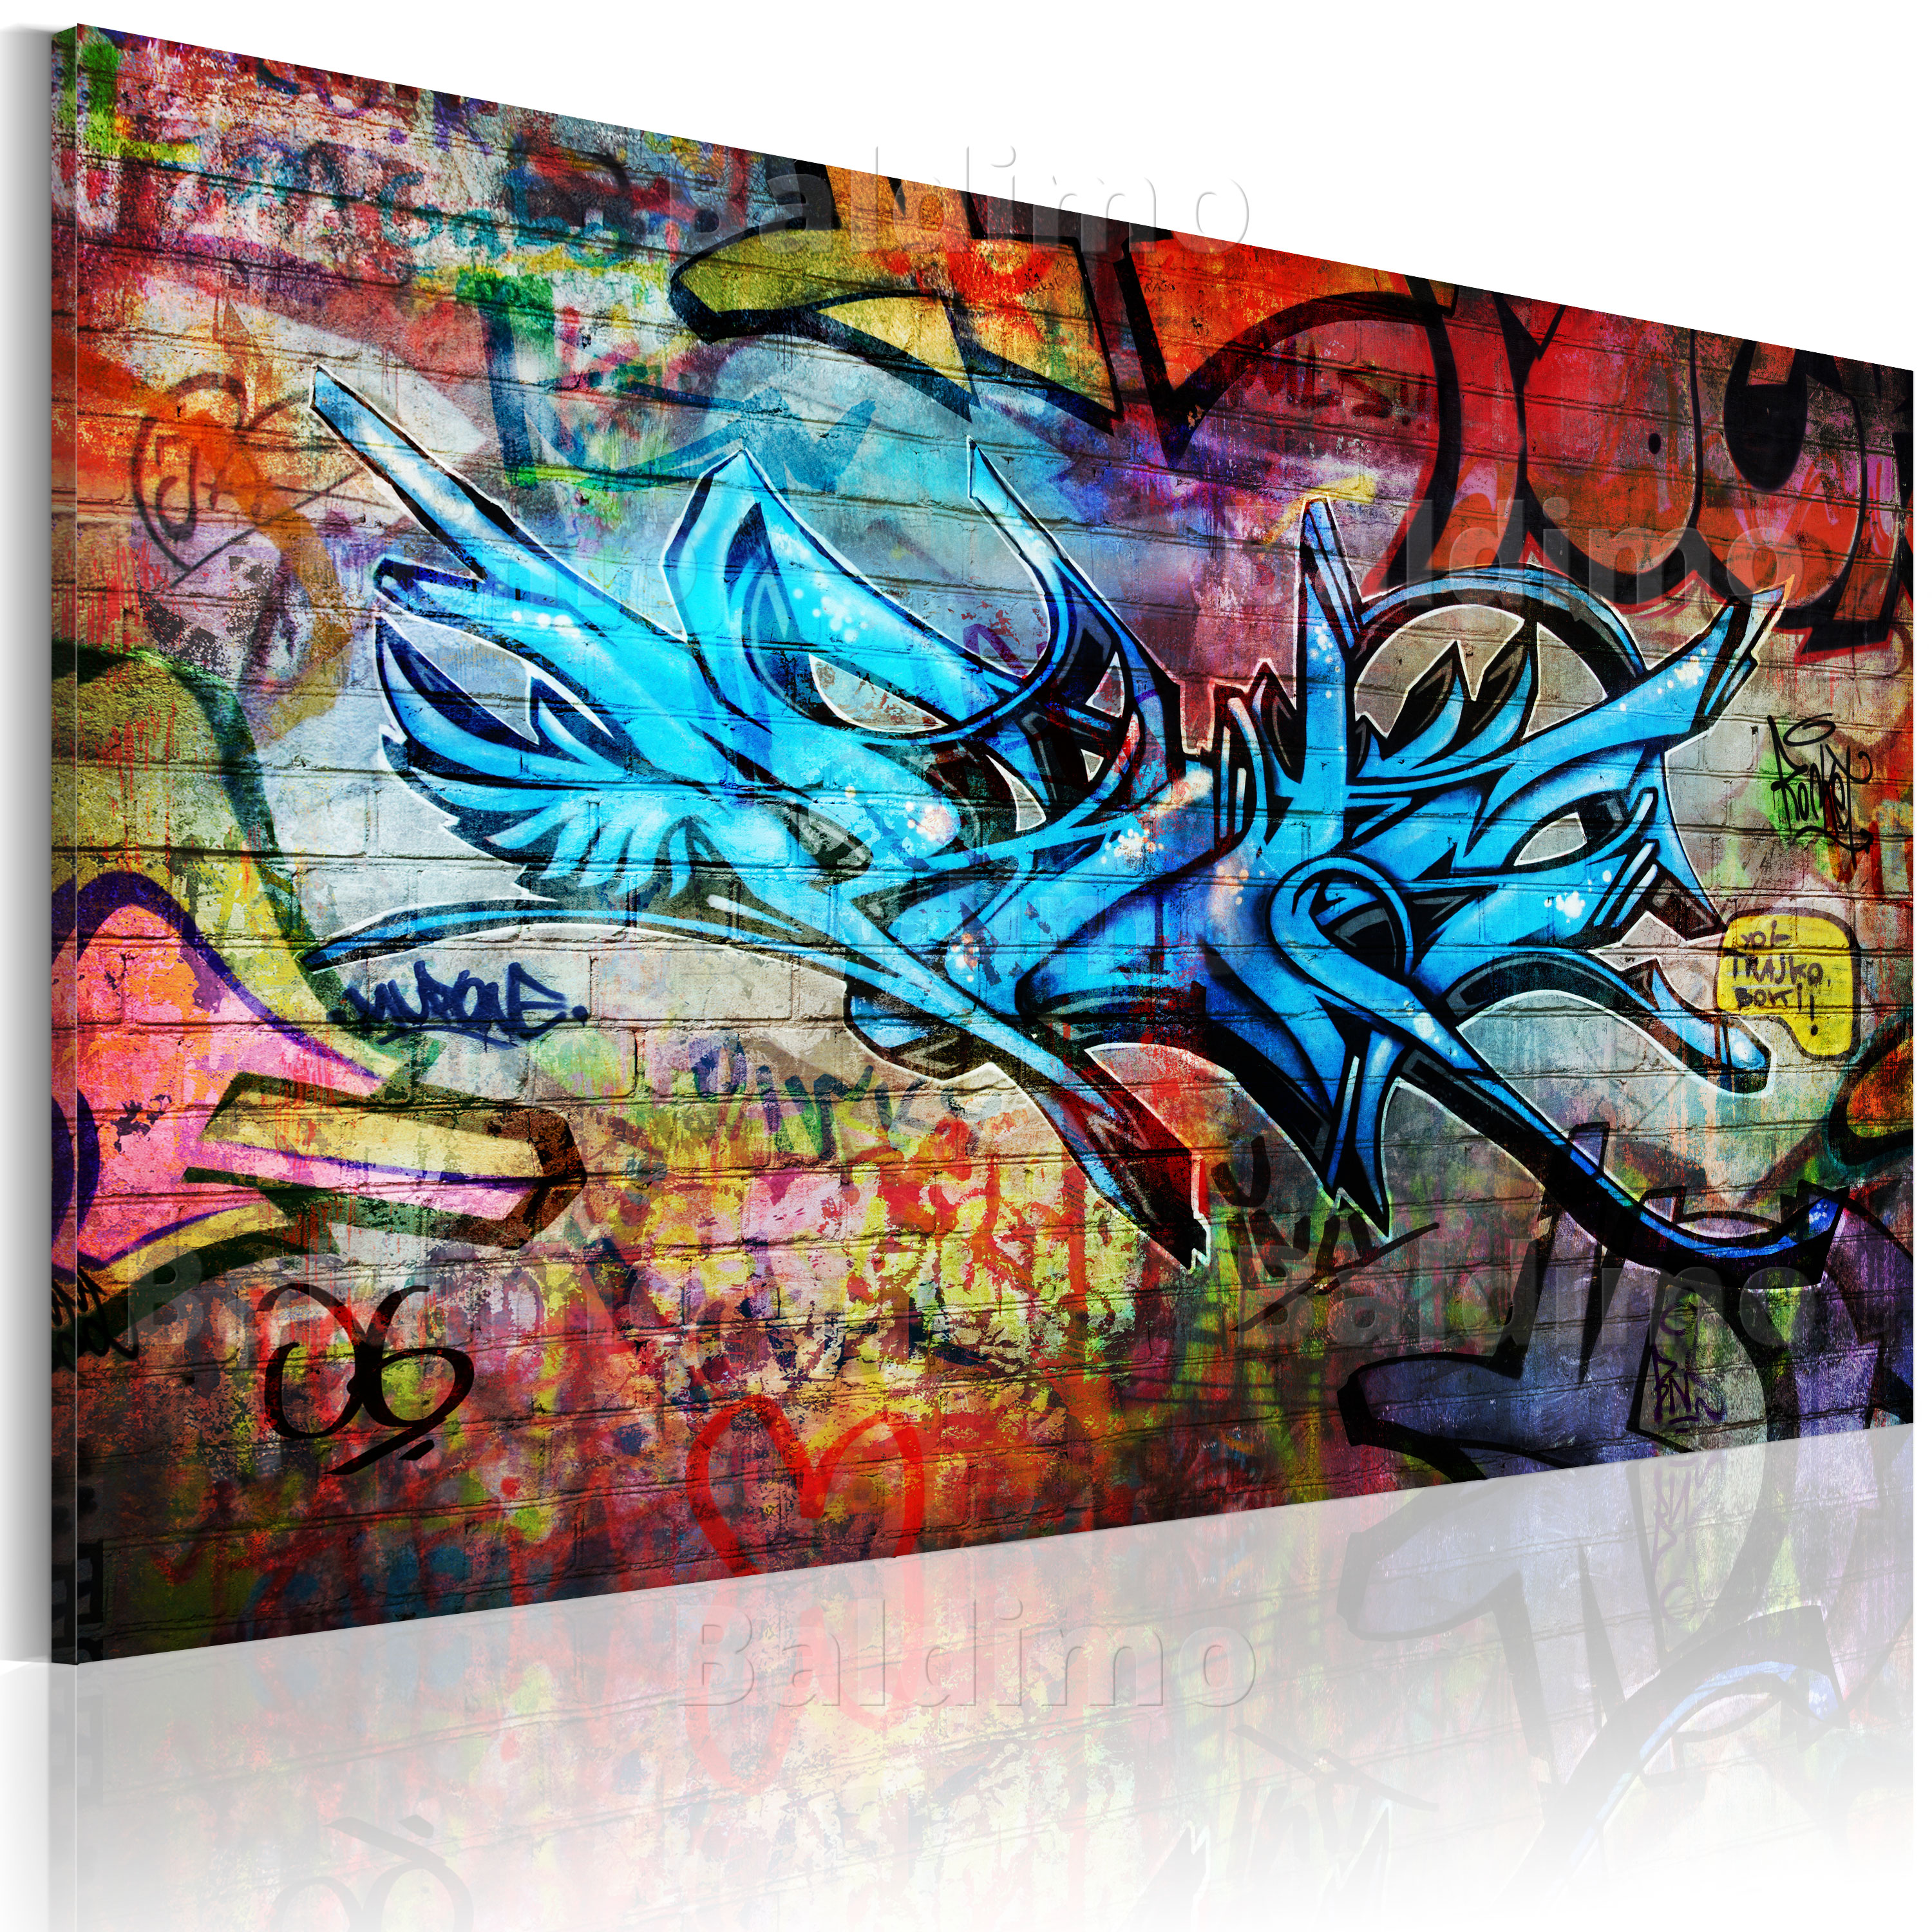 leinwand bilder xxl fertig aufgespannt bild graffiti 020105 11. Black Bedroom Furniture Sets. Home Design Ideas